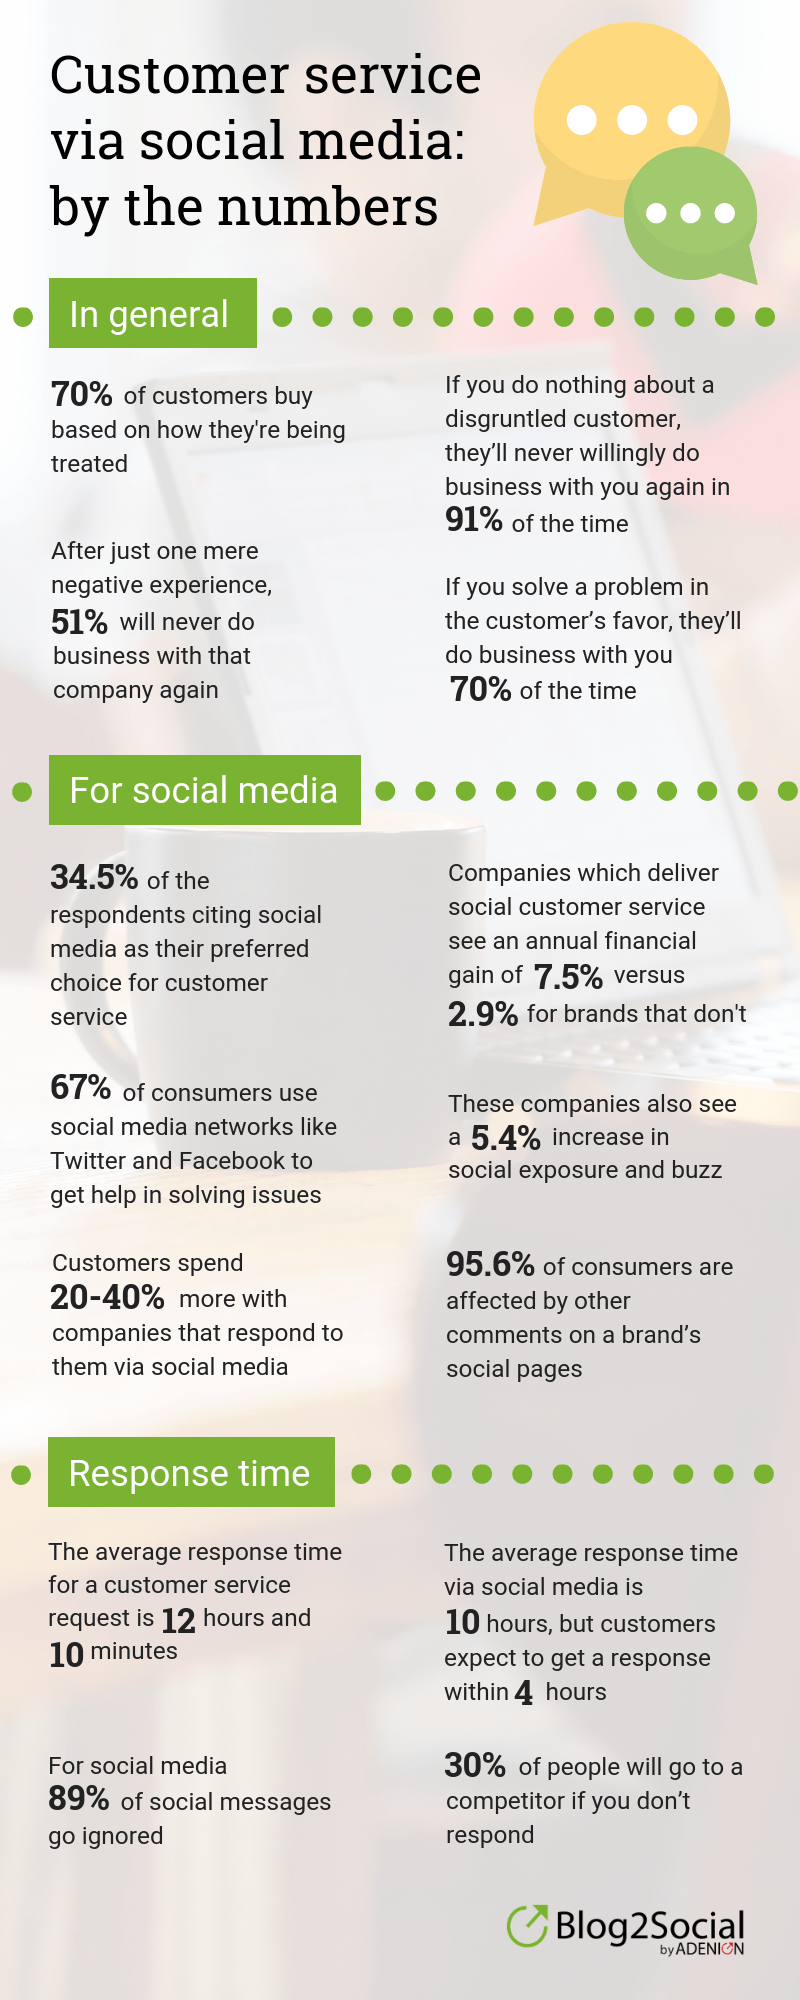 customer-service-via-social-media-in-numbers